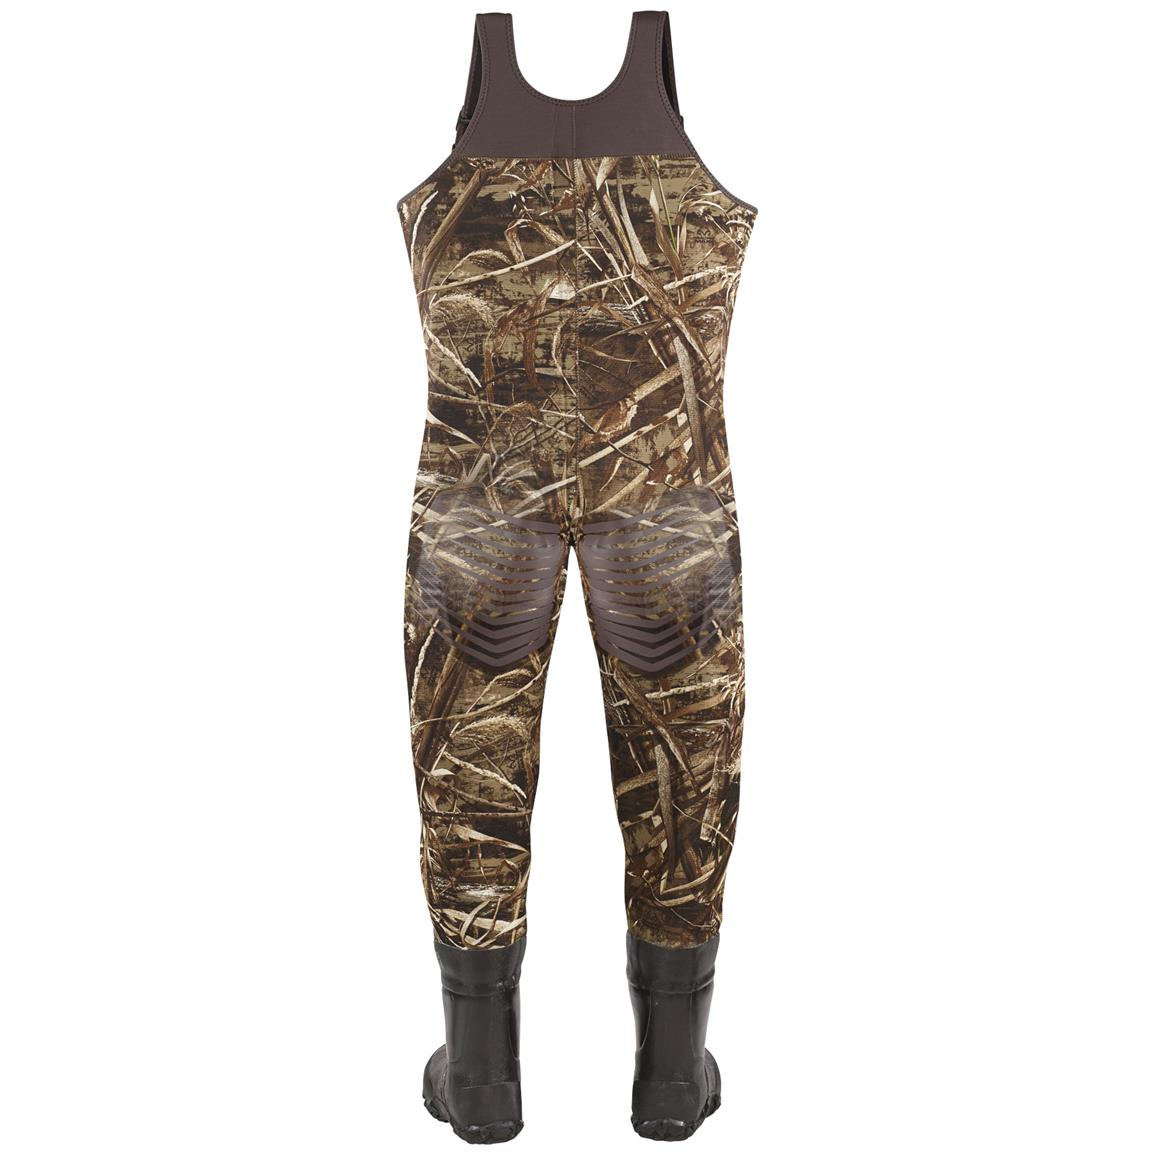 Youth Lacrosse 1,000 Gram Thinsulate Ultra Mallard II Waders, Realtree MAX-5 Camo - Back view